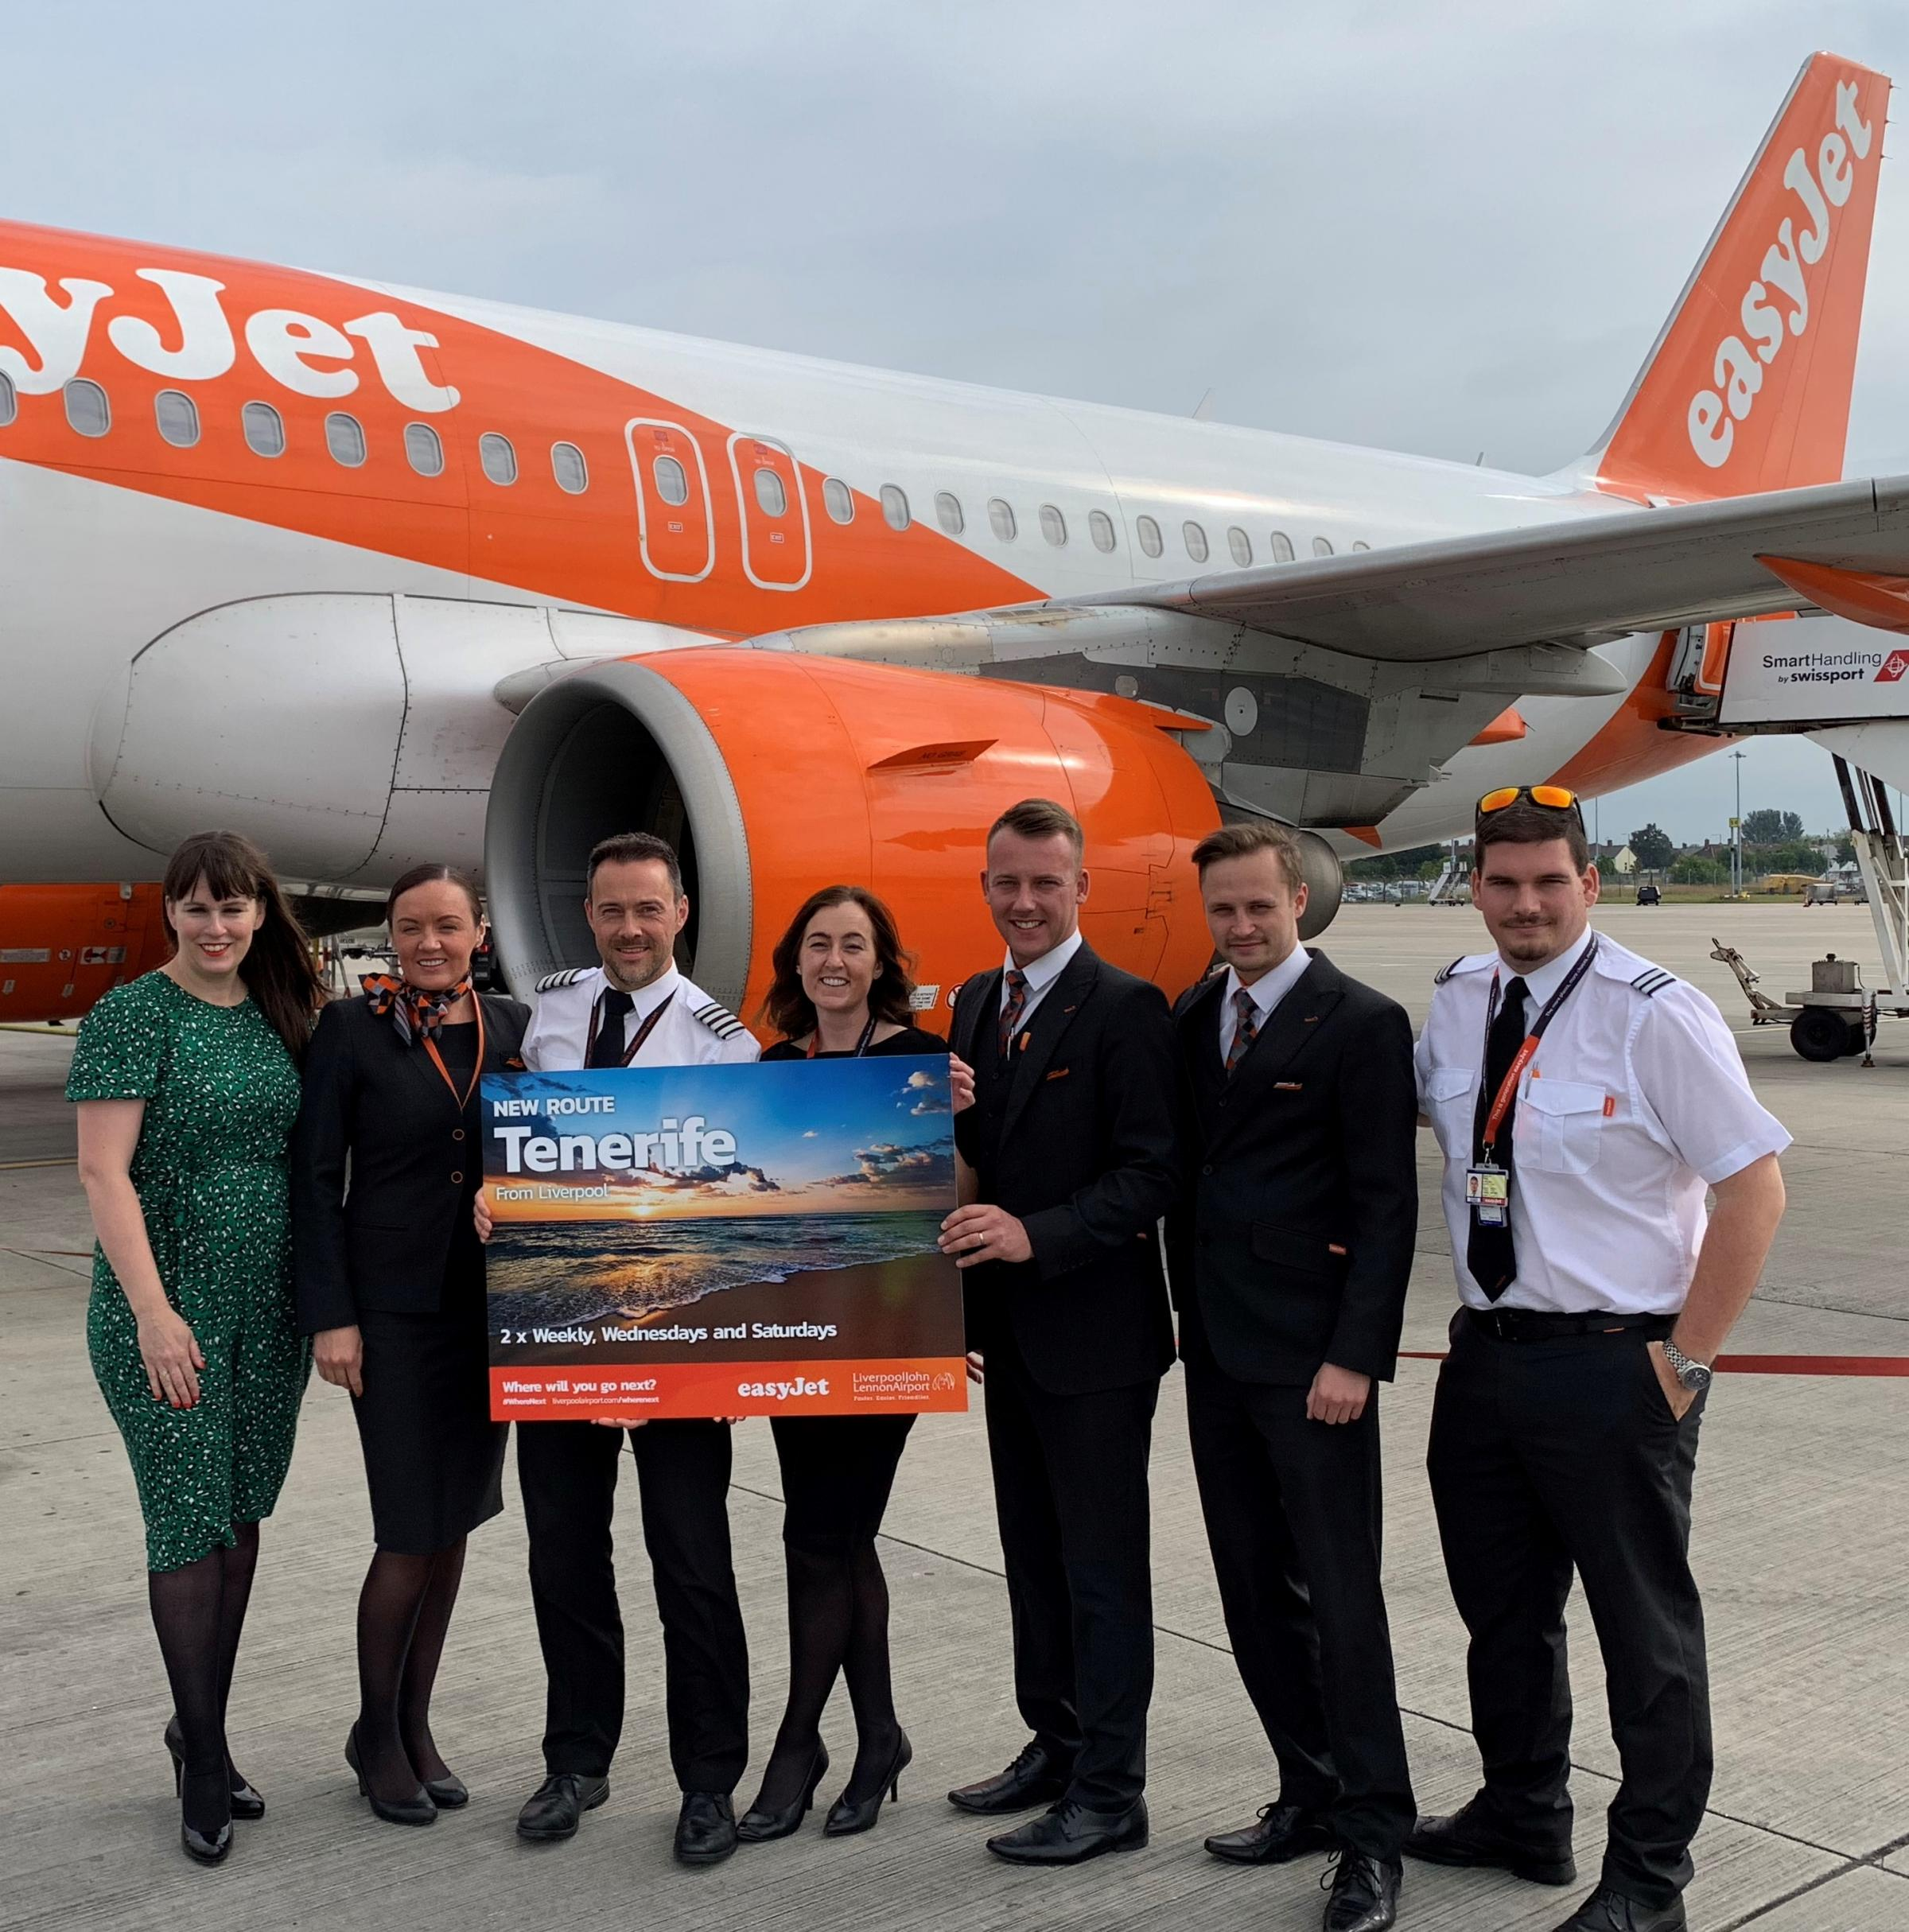 New flights to Tenerife from Liverpool John Lennon Airport revealed